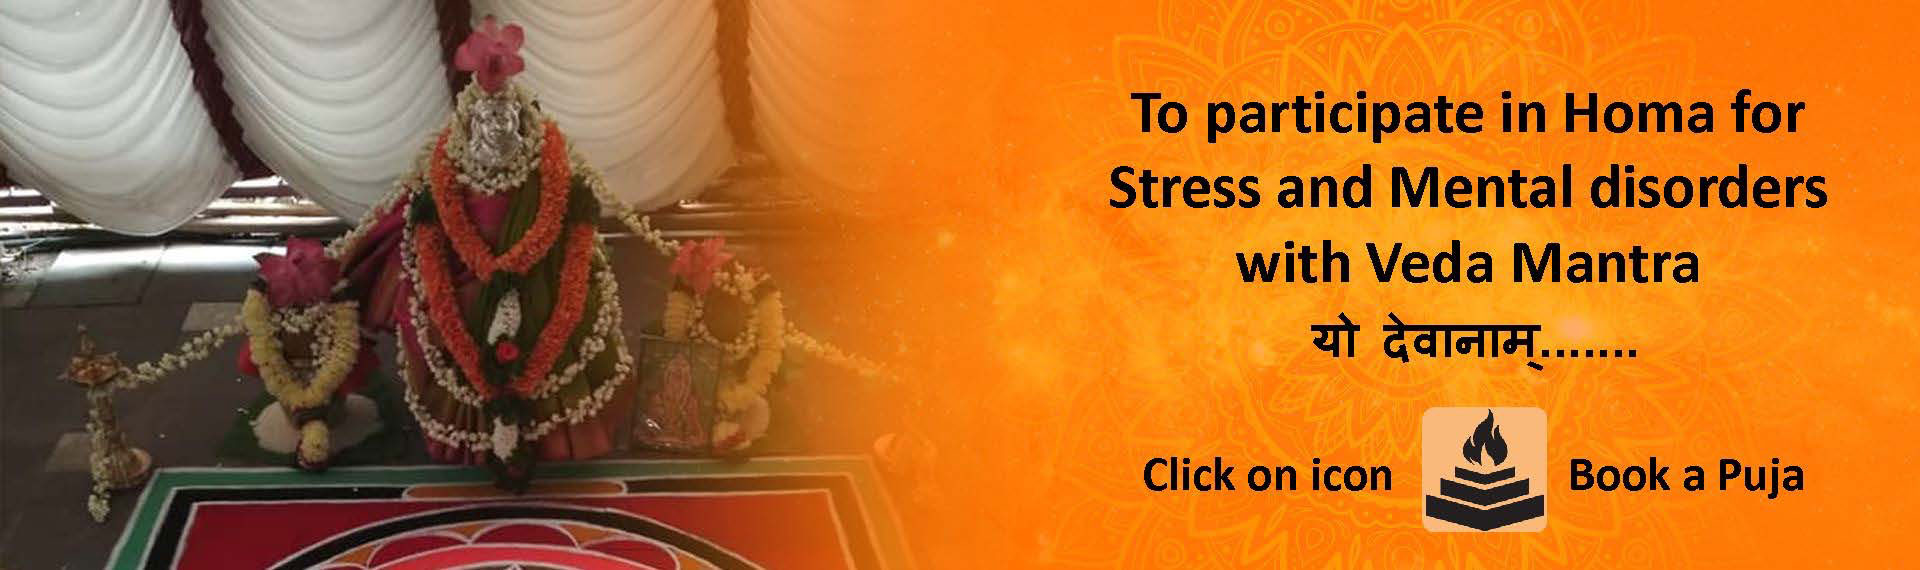 Homa for stress & mental disorders with Veda Mantra